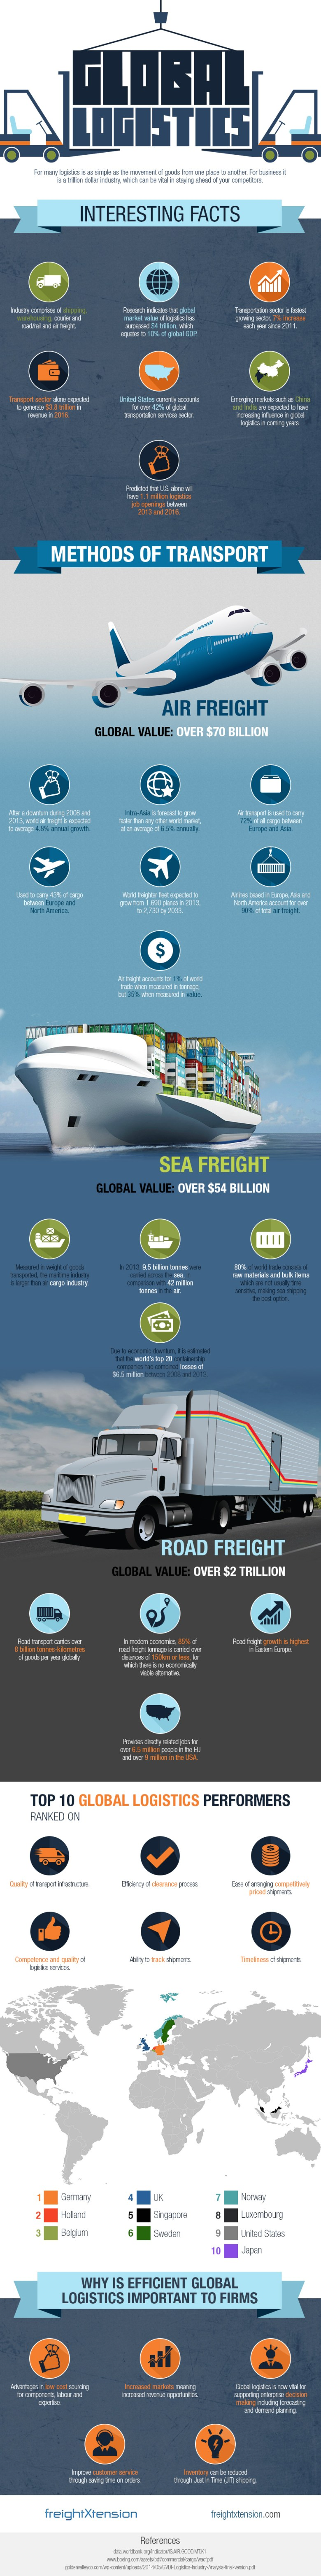 global-logistics-market-infographic.jpg